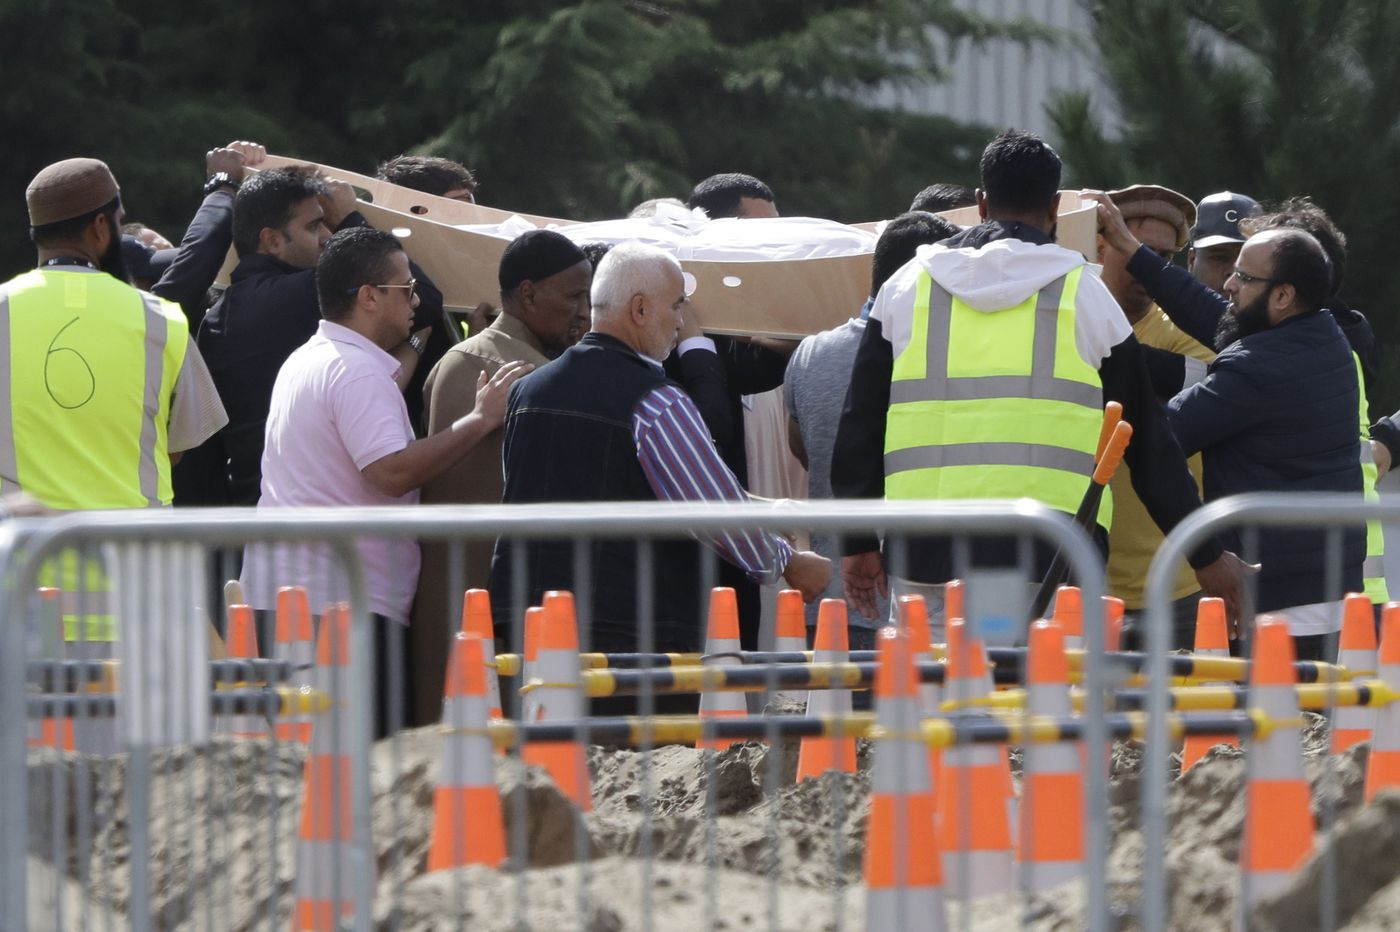 Father and son who fled Syria are buried in New Zealand